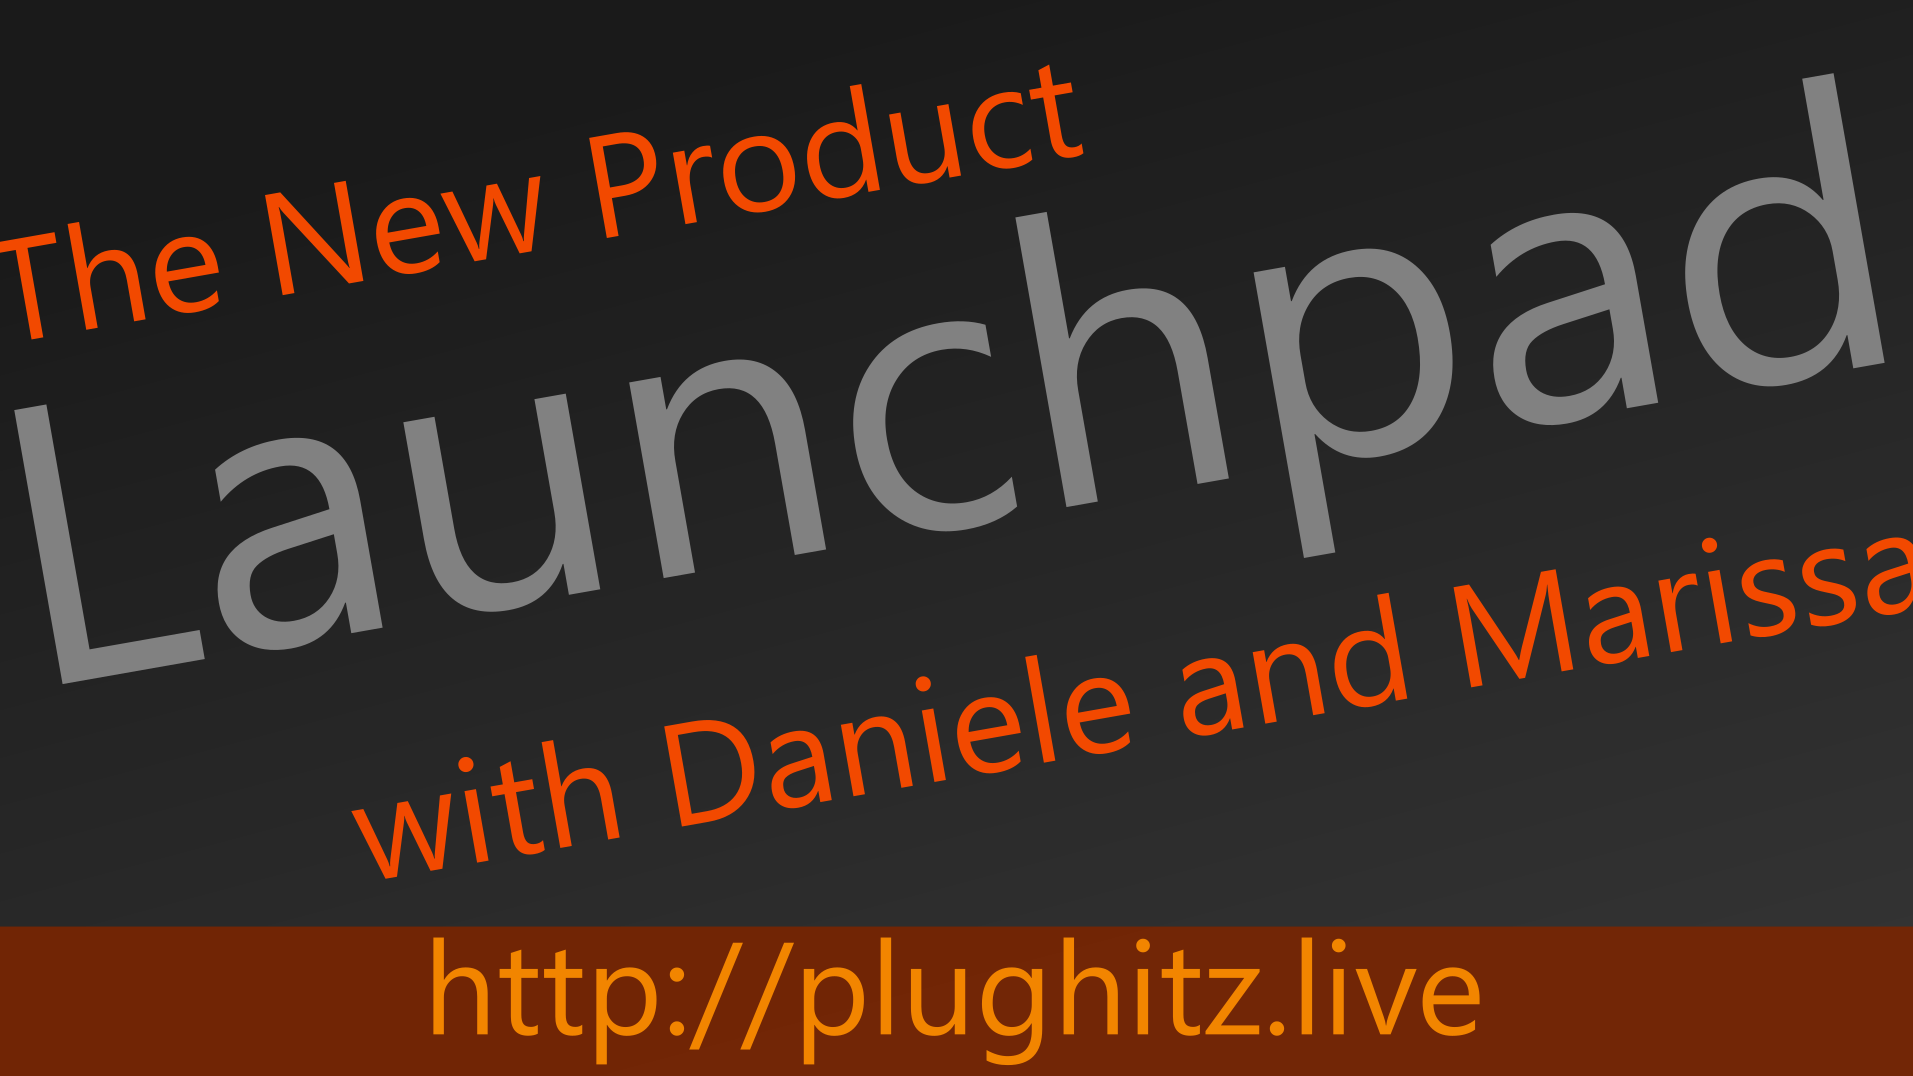 The New Product Launchpad